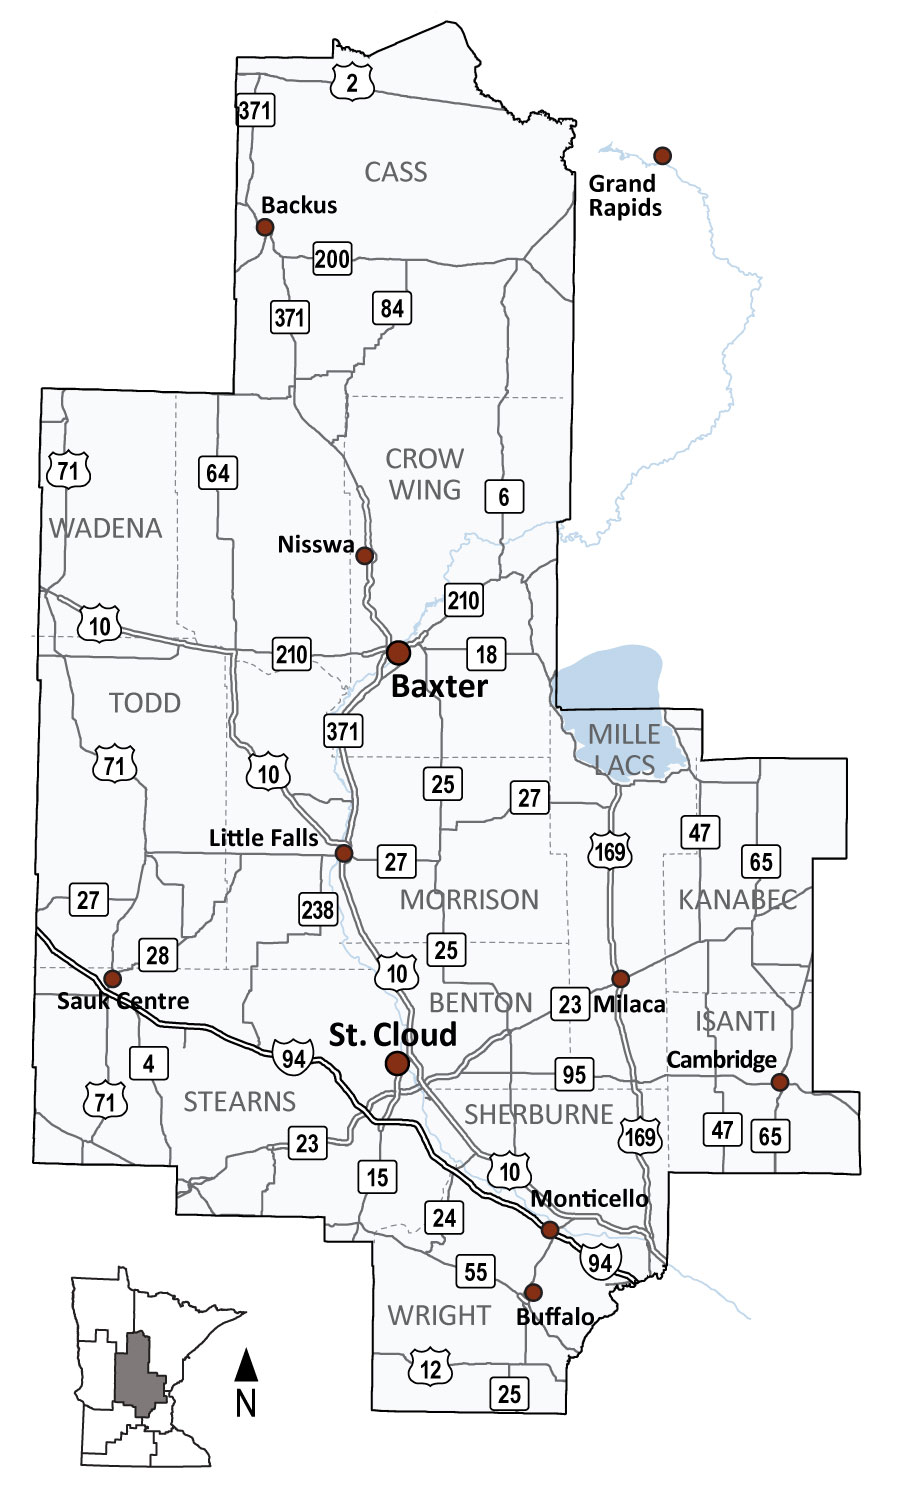 Map of MnDOT District 3, covering Central Minnesota